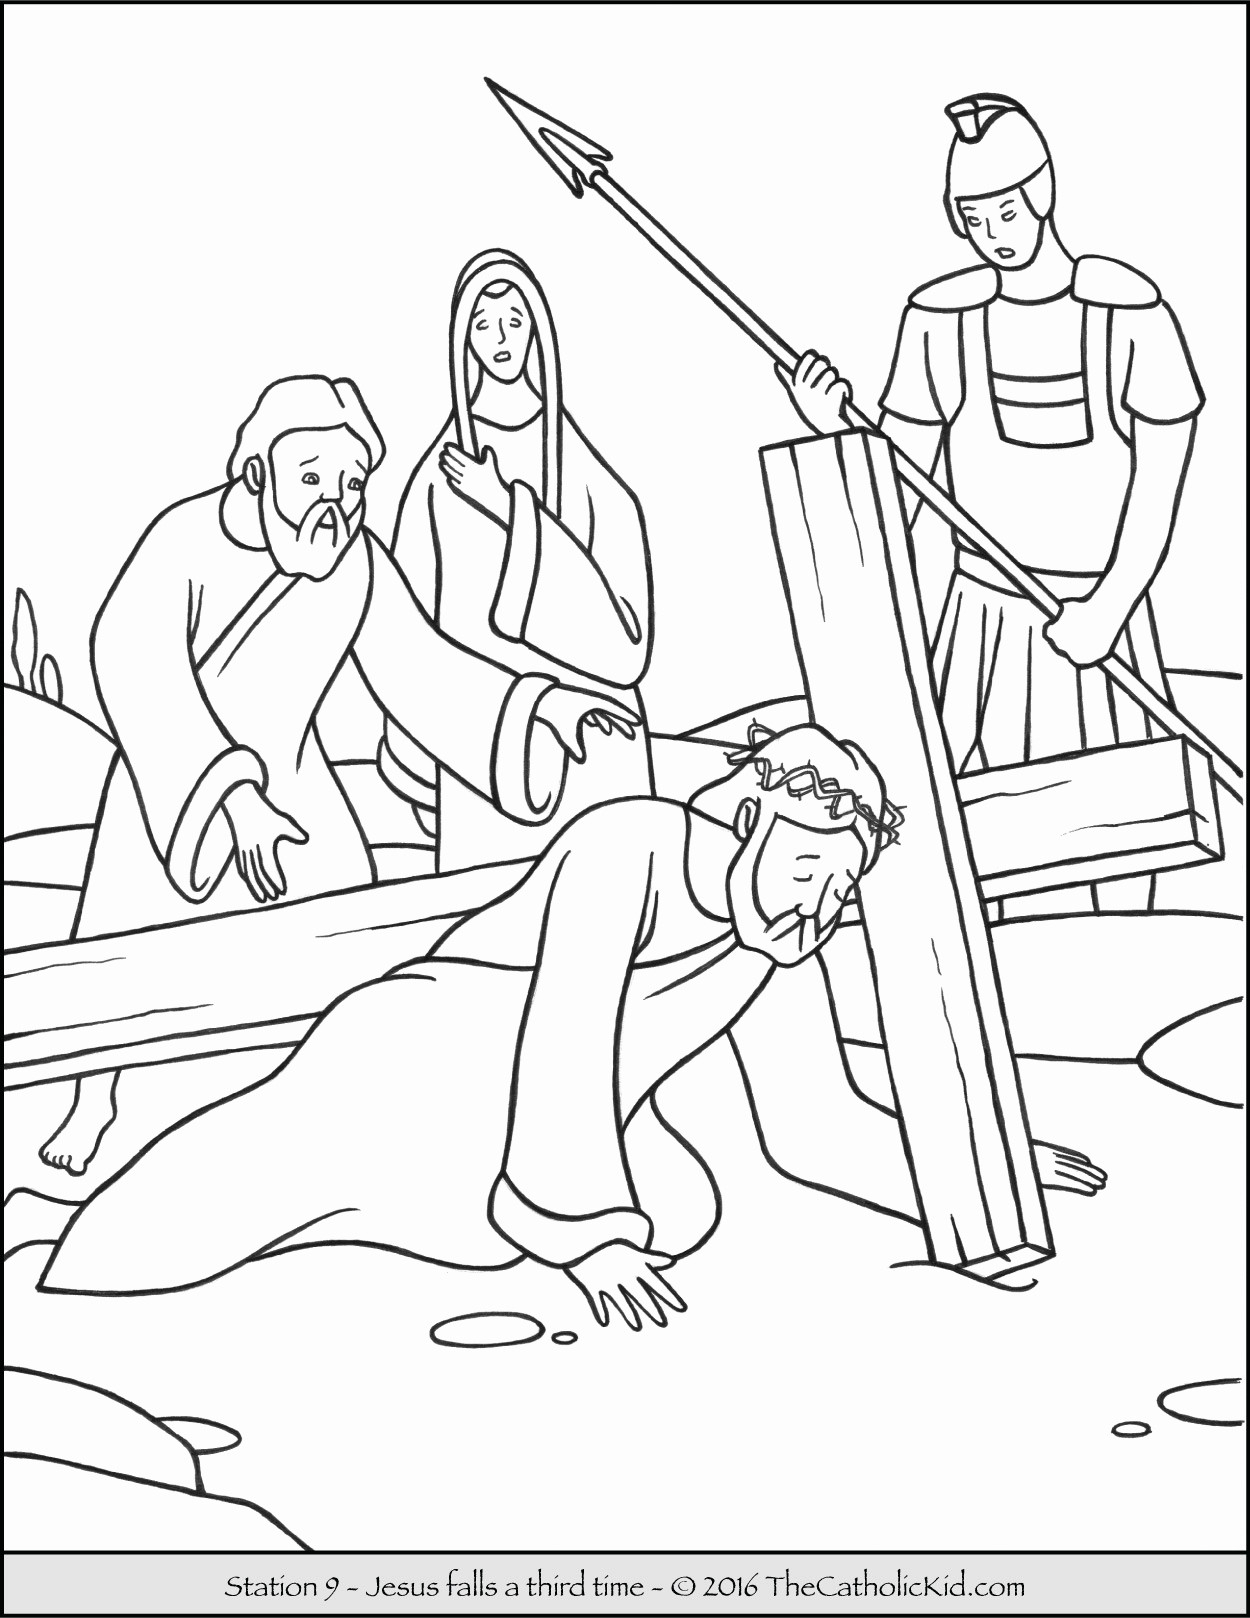 23 Jesus Christ Coloring Pages Collection - Coloring Sheets